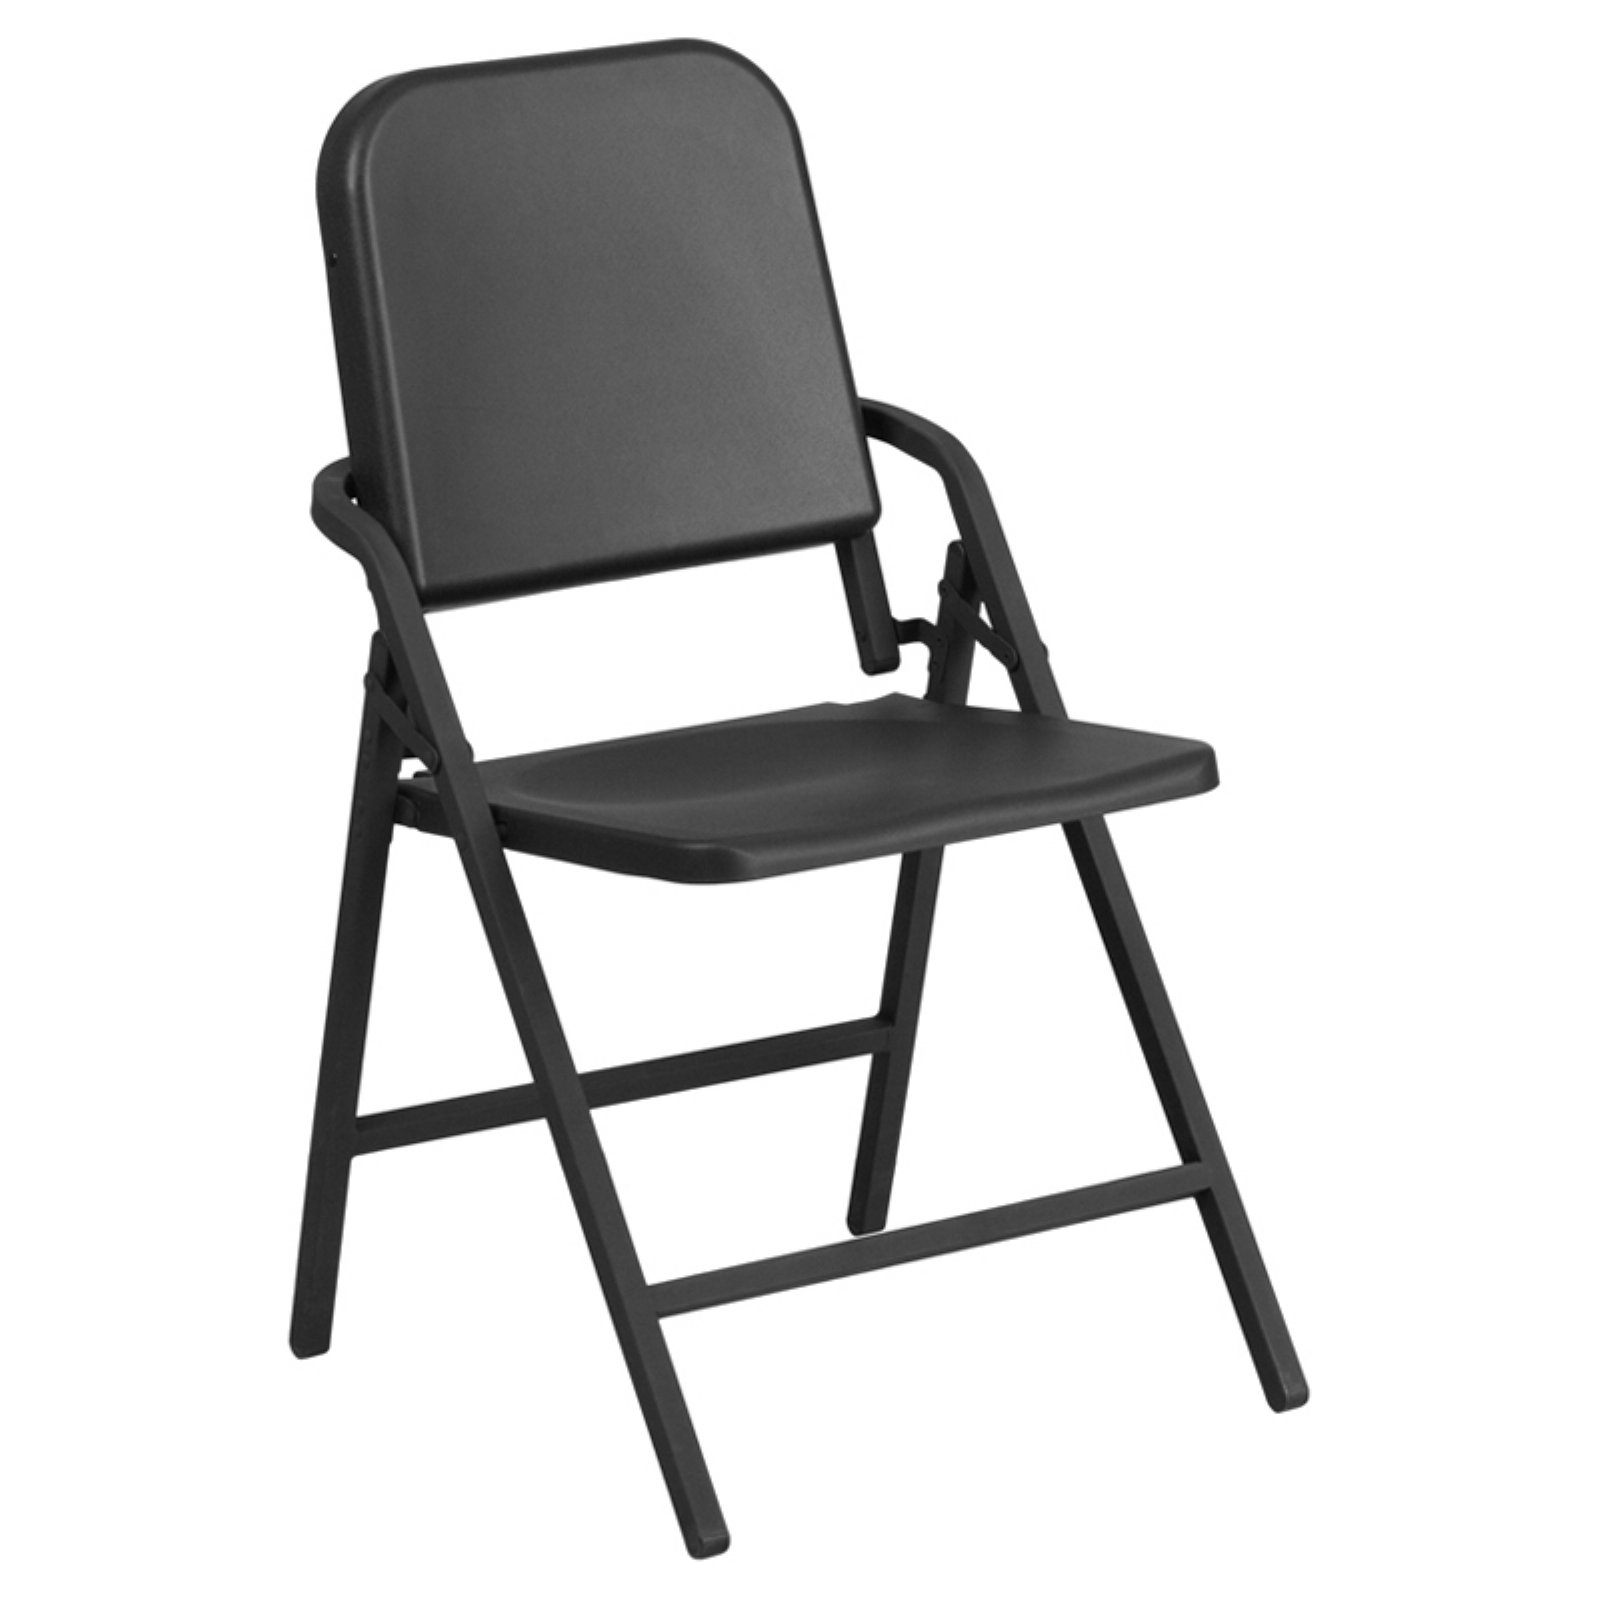 Flash Furniture HERCULES Series Black High Density Folding Melody Band/Music Chair